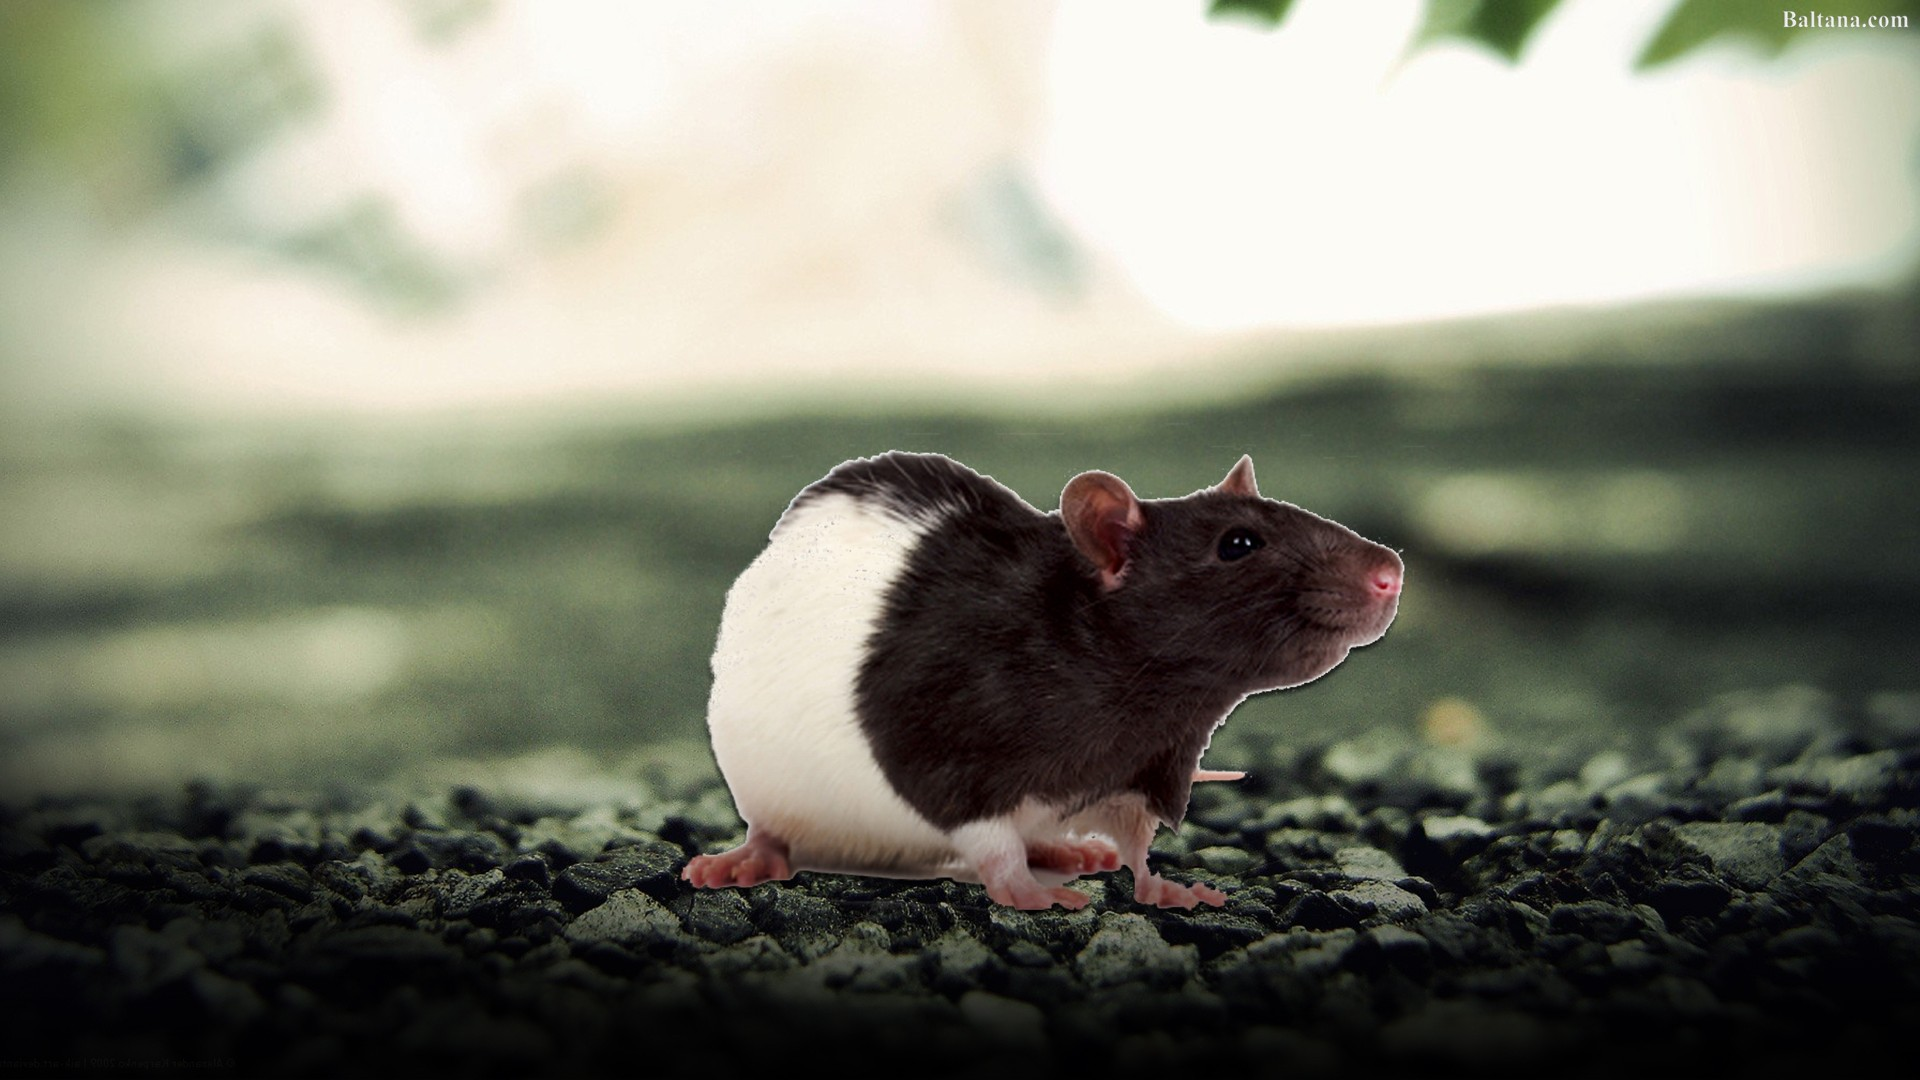 Rat Wallpapers HD Backgrounds, Image, Pics, Photos Free Download